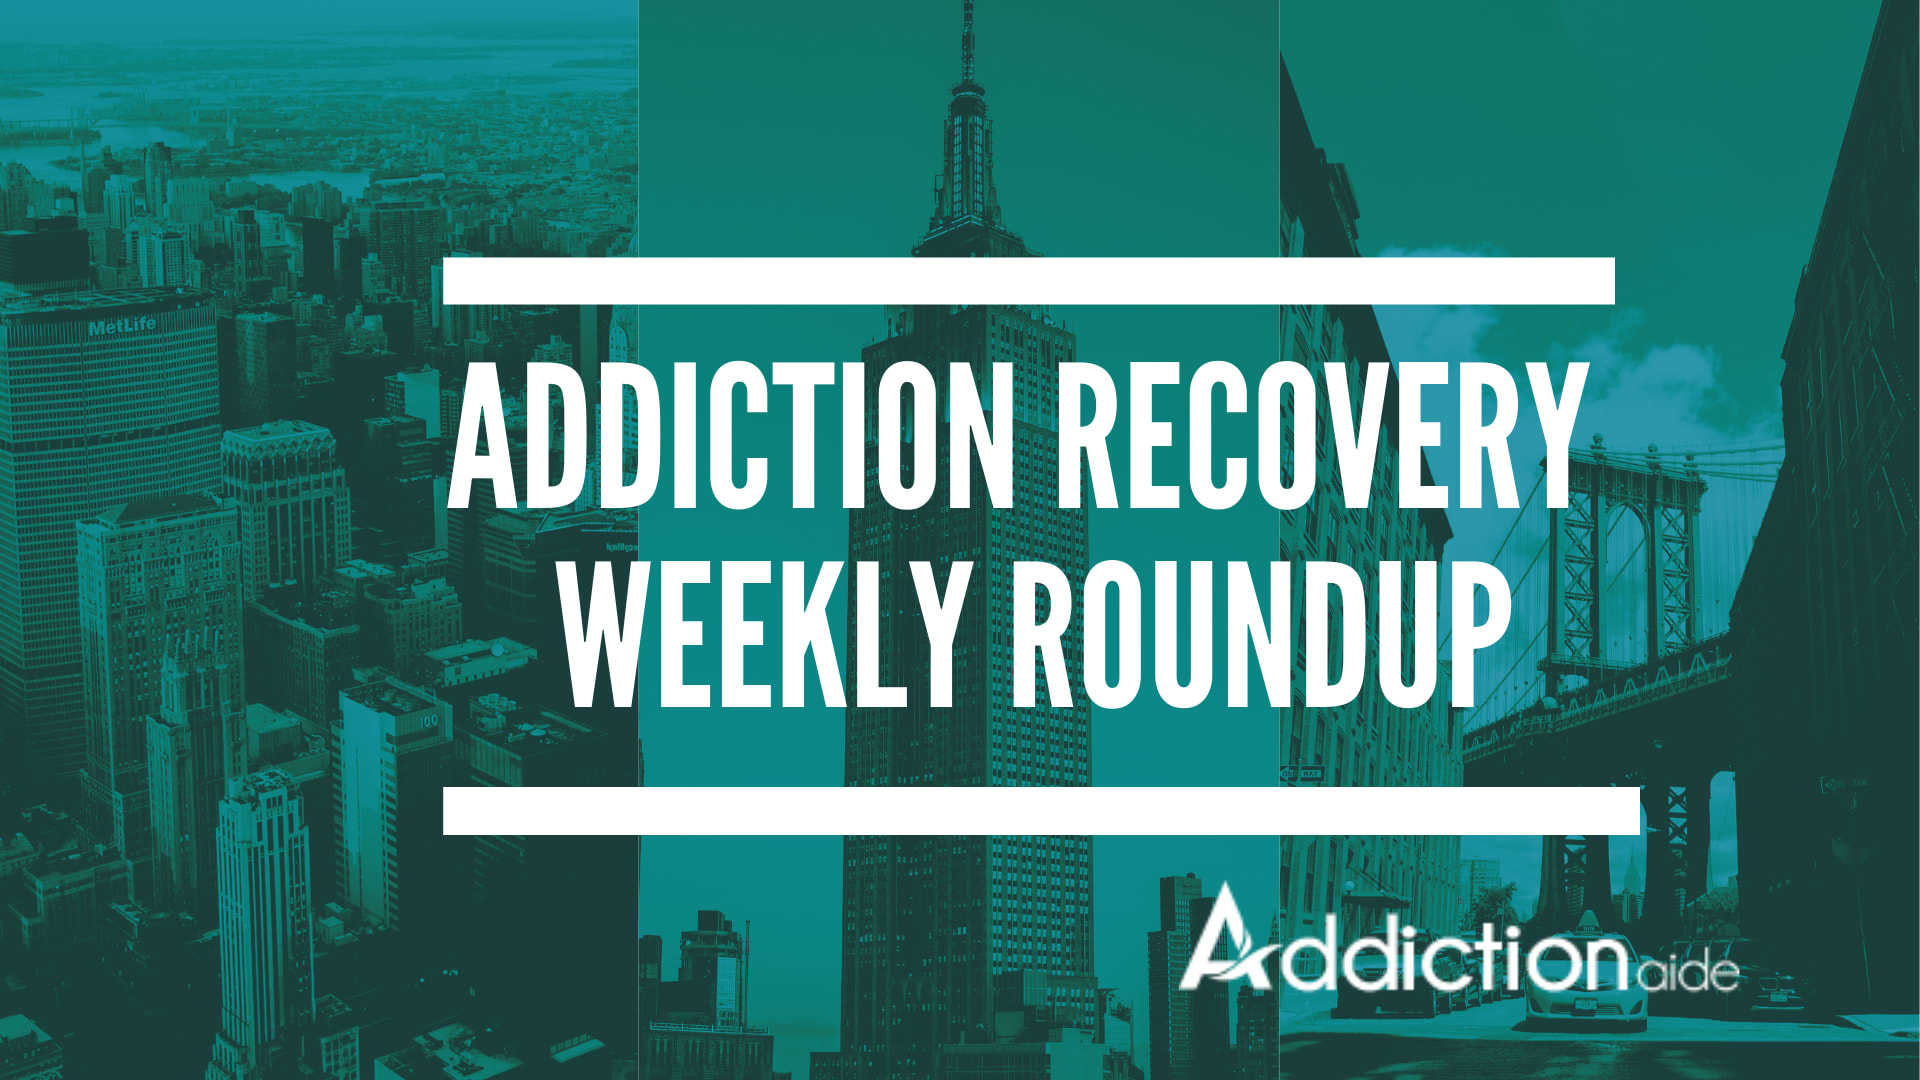 Addiction Recovery Weekly Roundup